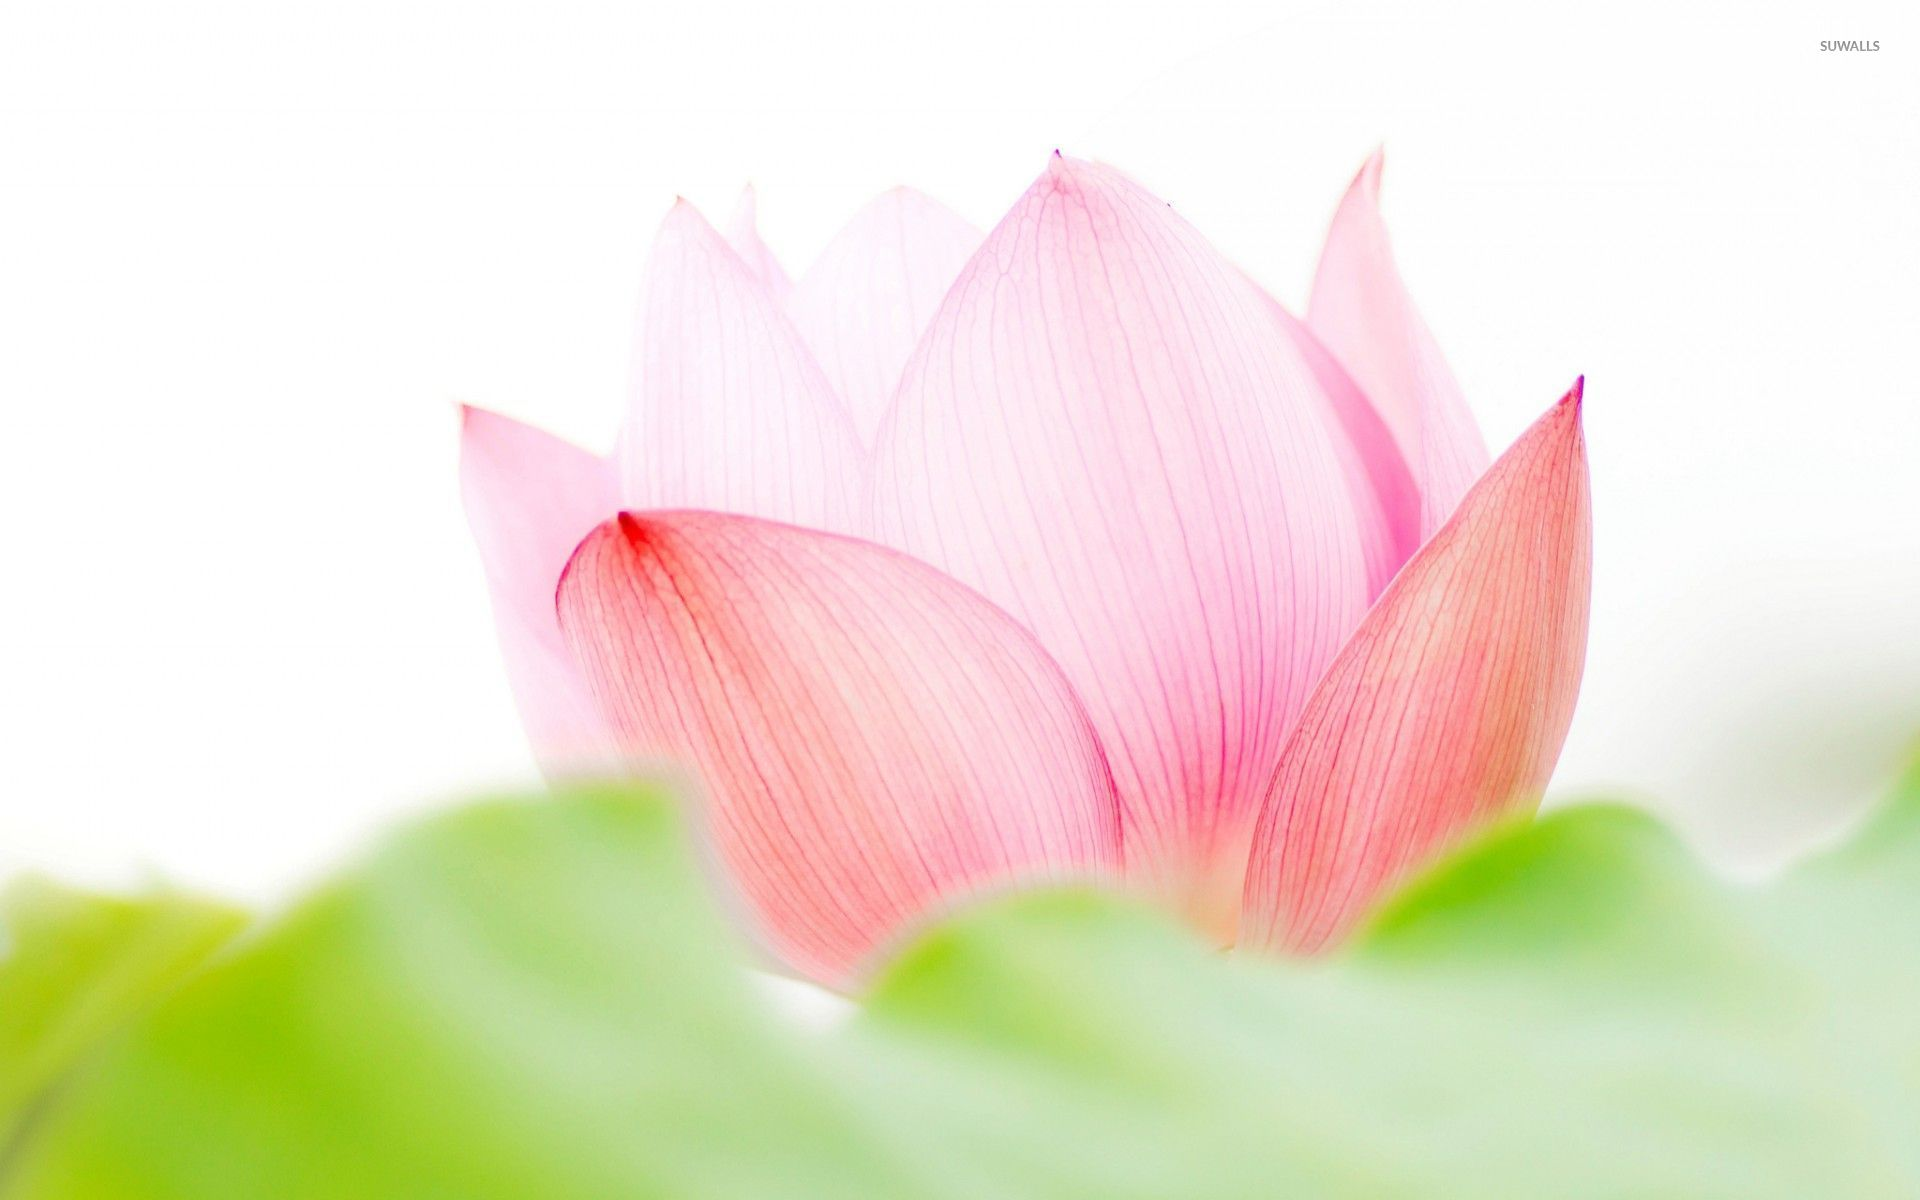 Pink lotus flower wallpaper - Flower wallpapers - #53170